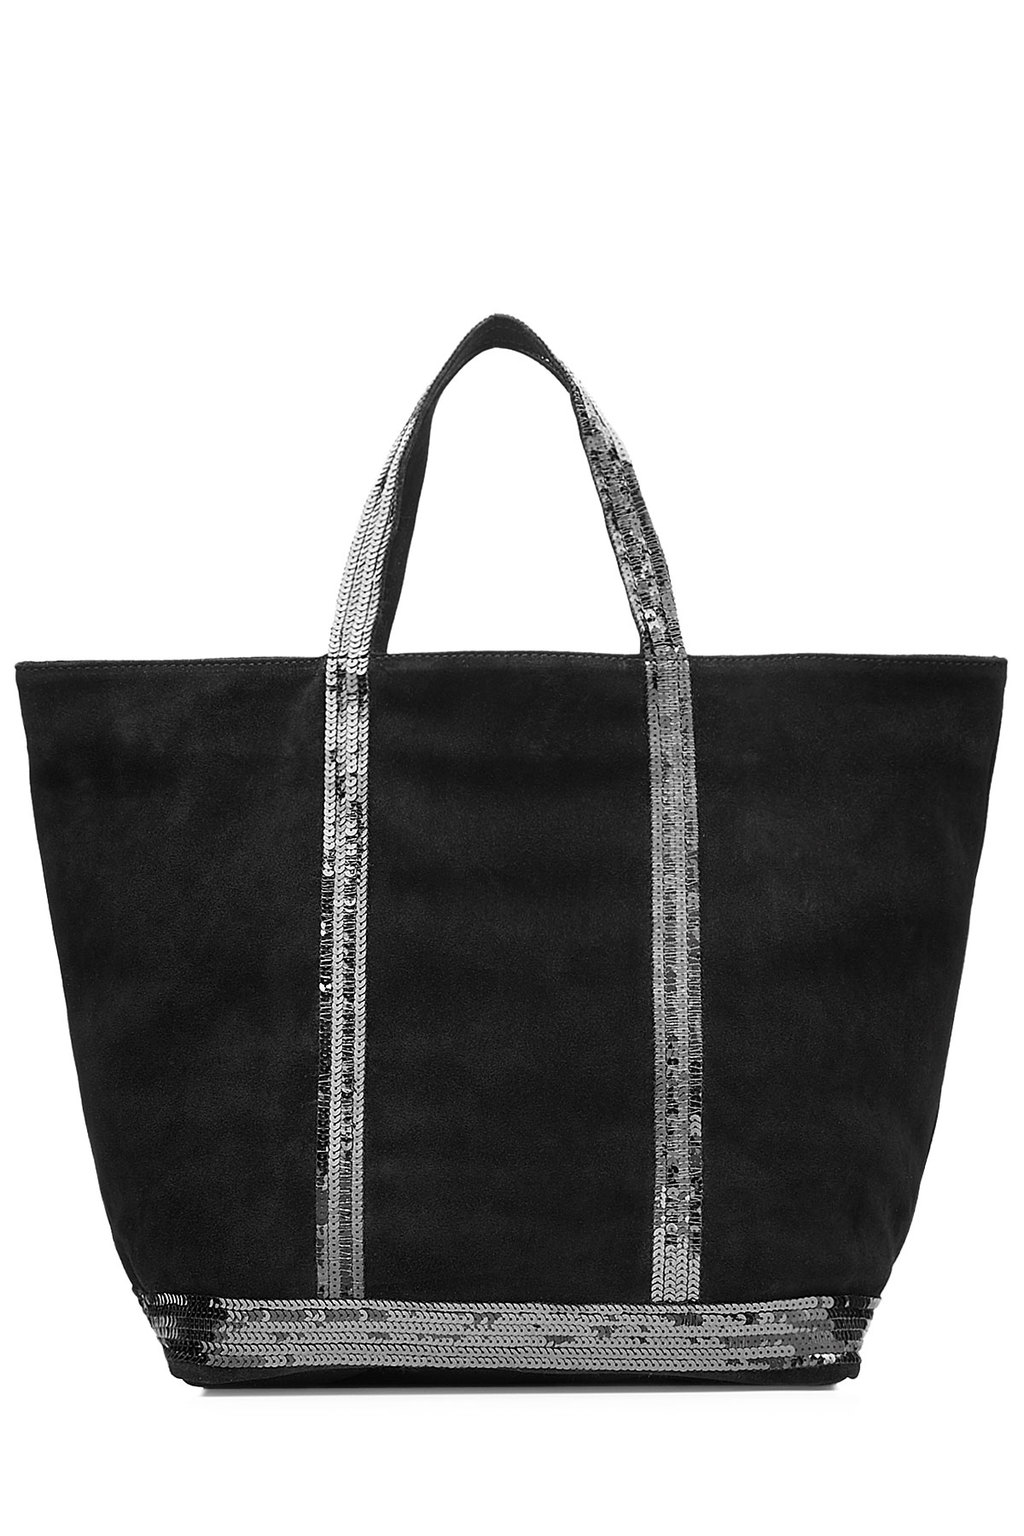 Suede Tote With Sequin Embellishment Black - secondary colour: silver; predominant colour: black; occasions: casual; type of pattern: standard; style: tote; length: shoulder (tucks under arm); size: oversized; material: suede; embellishment: sequins; pattern: plain; finish: plain; season: s/s 2016; wardrobe: investment